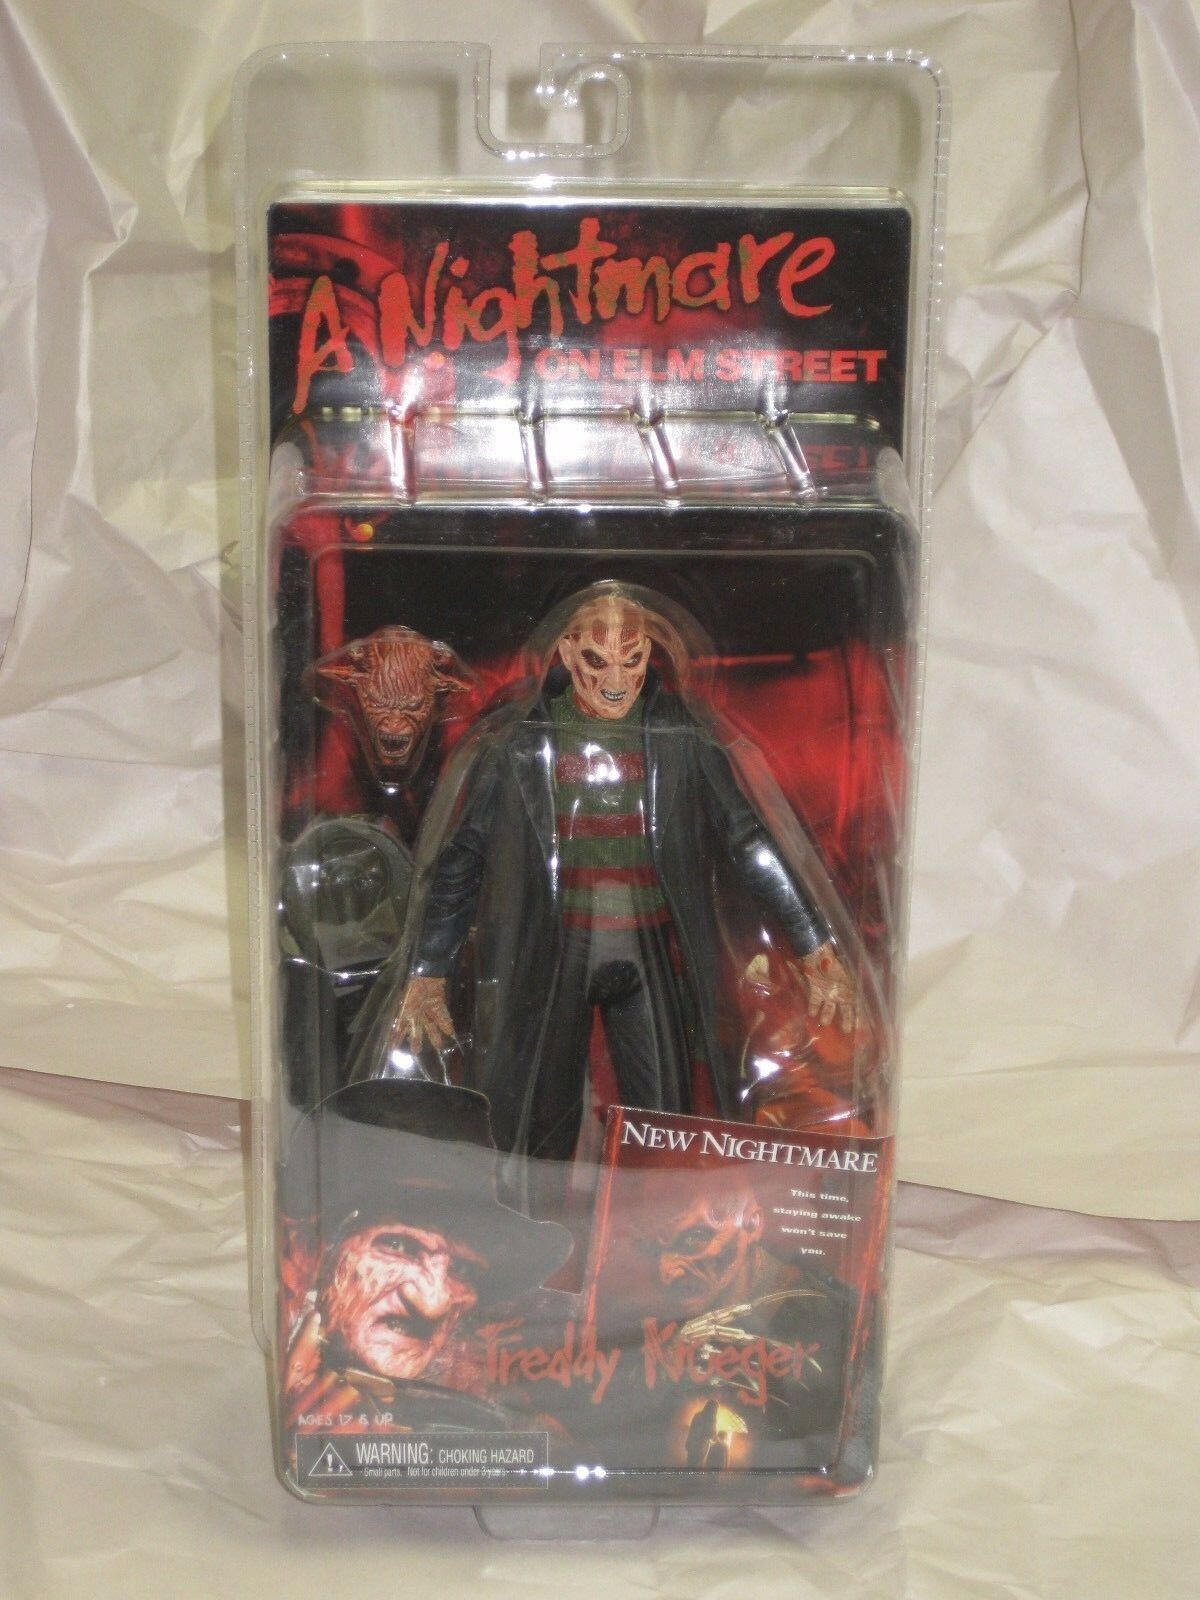 A NIGHTMARE on ELM STREET - Action Figure - FROTDY KRUEGER - New  NECA Reel Toys